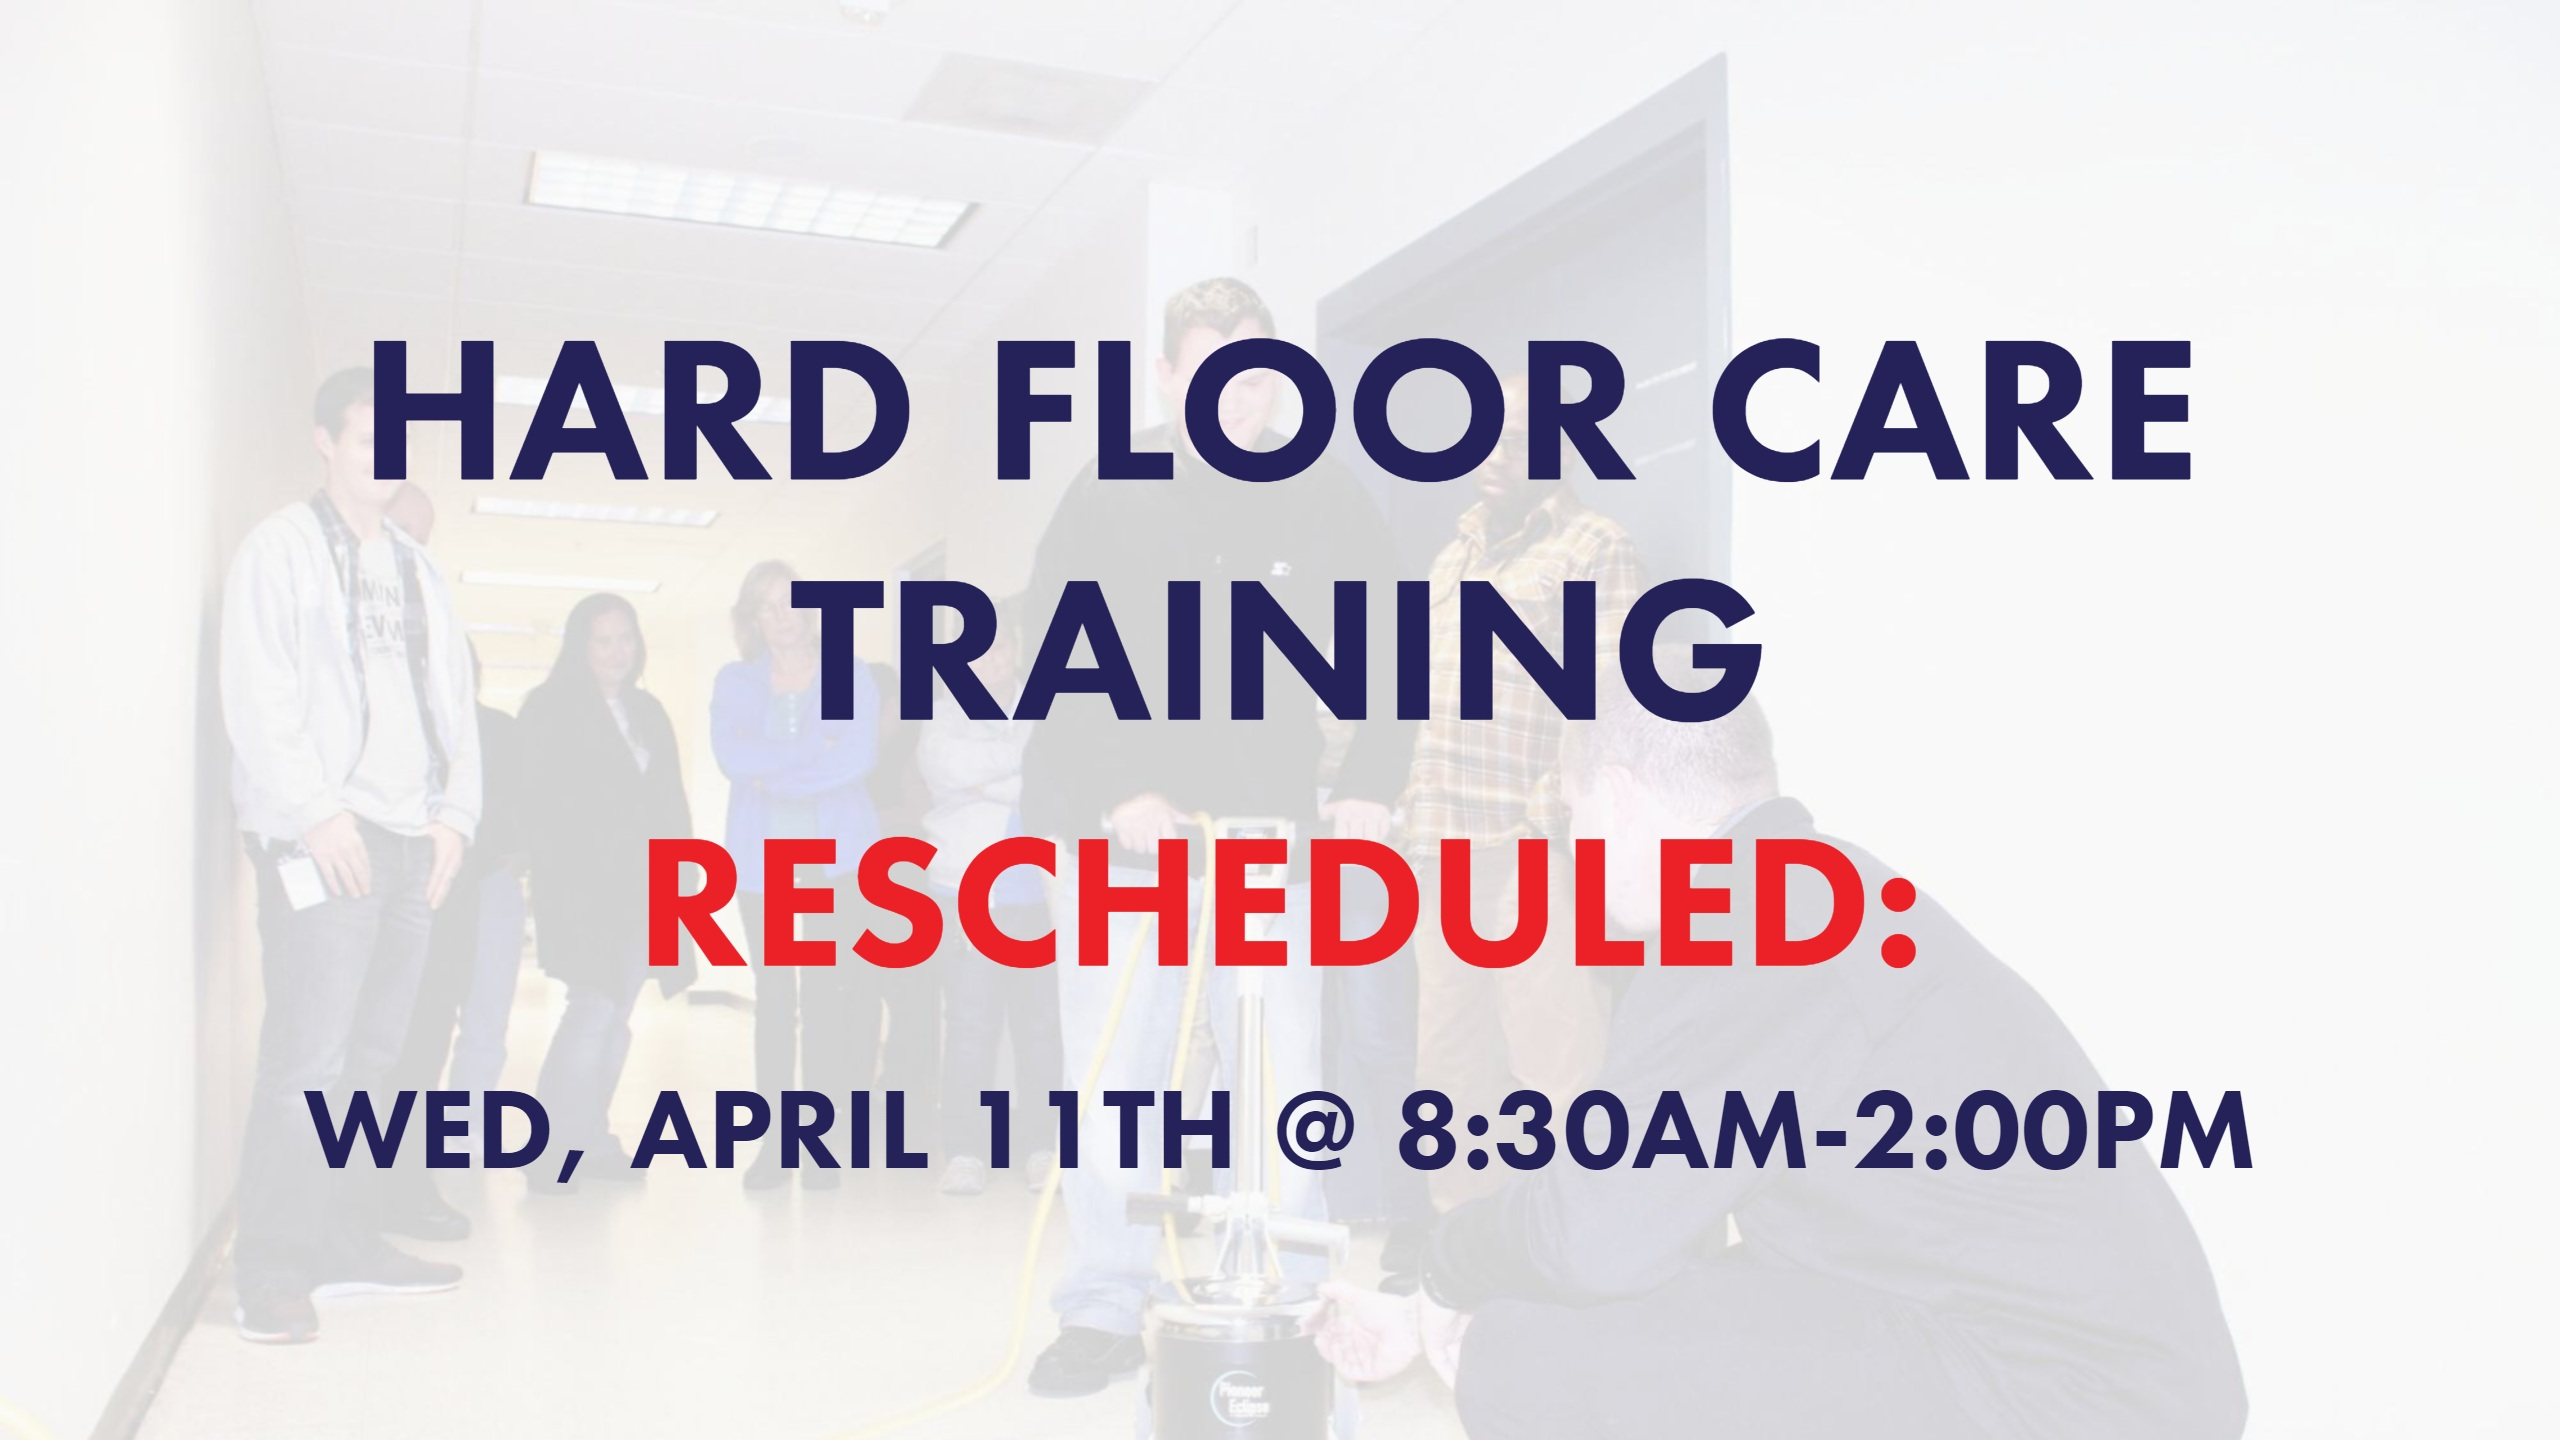 Rescheduled Hard Floor Care